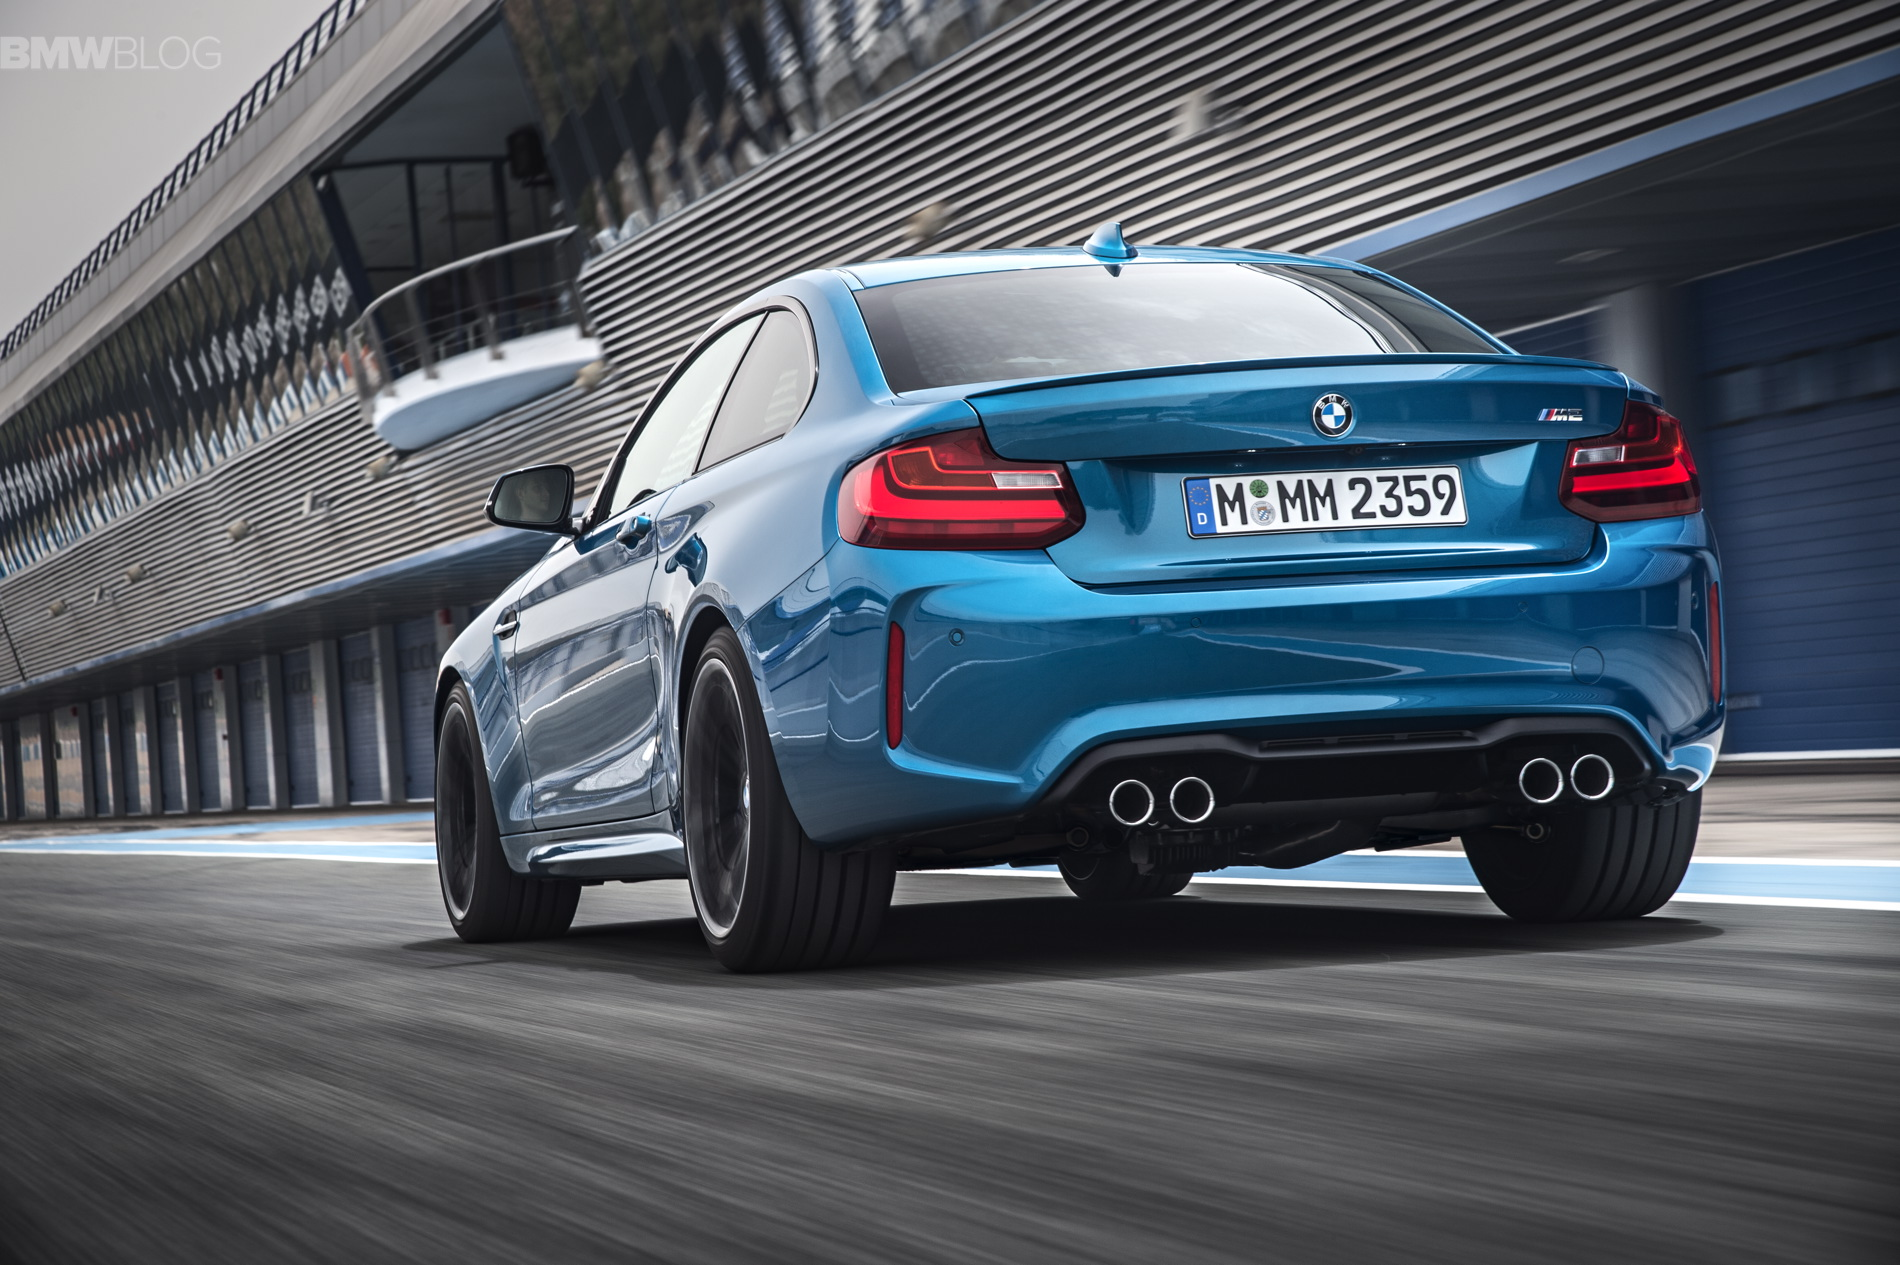 Bmw M2 Nurburgring Time 7 58 Minutes 7 Seconds Faster